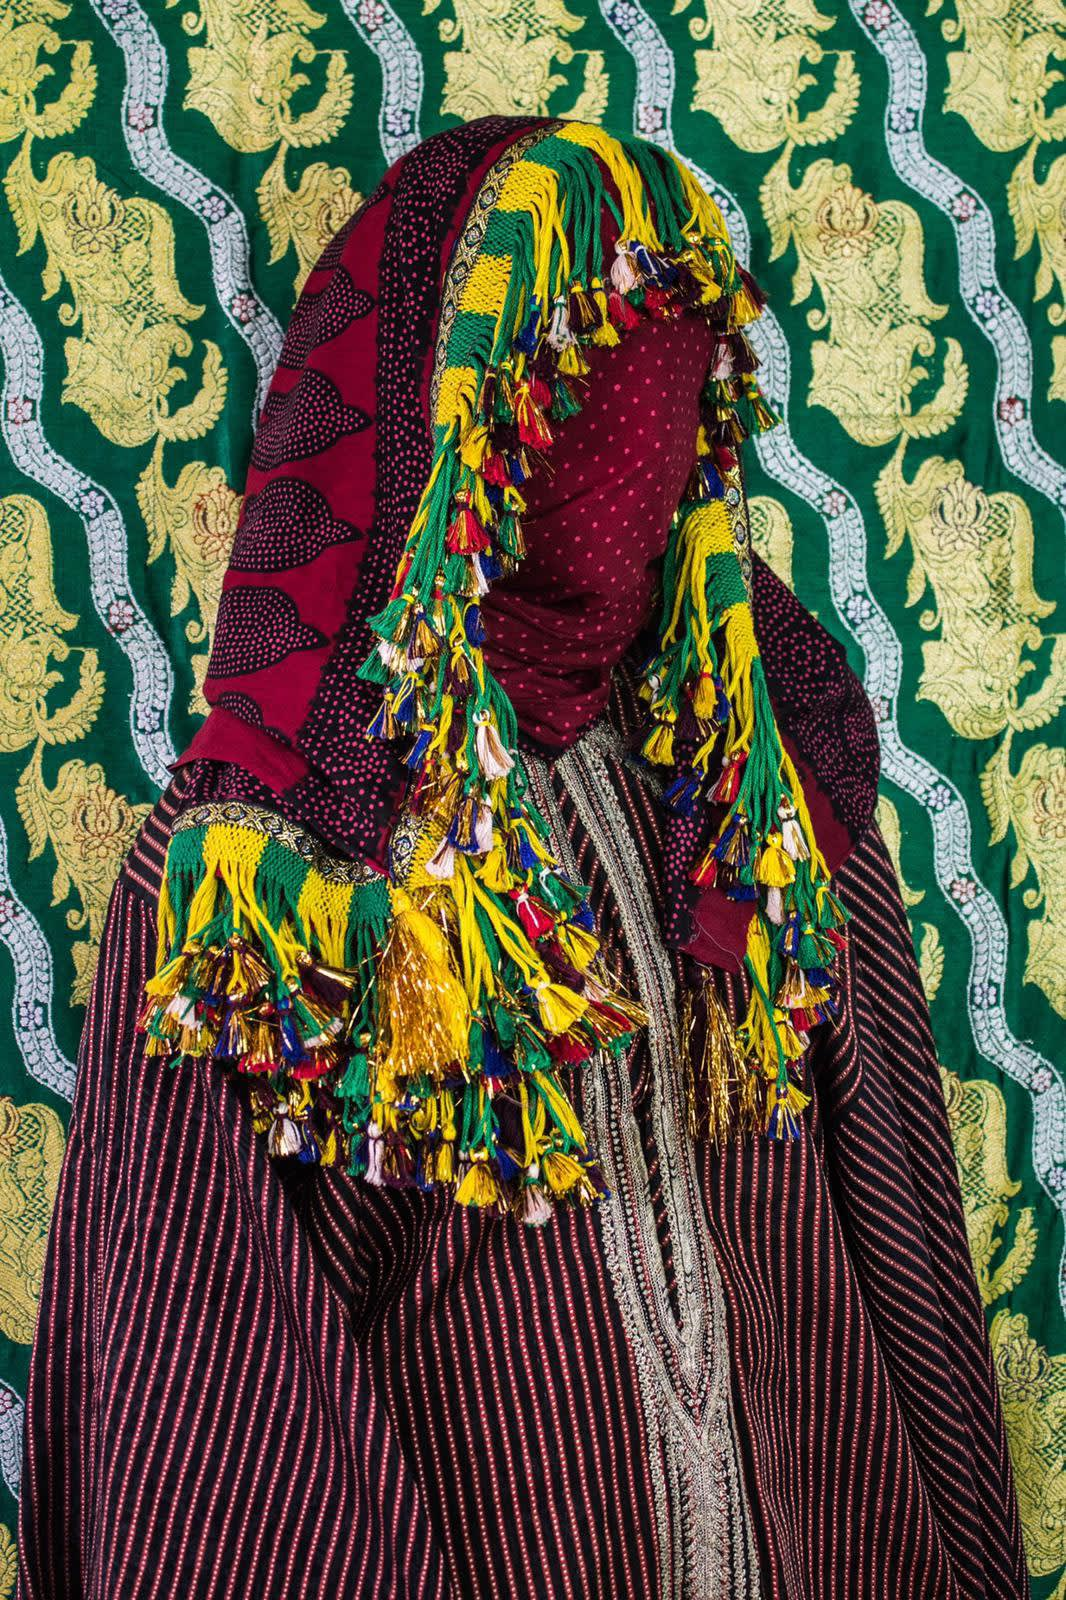 Kadia, BORDERLAND series, by Alia Ali. 2017. A model is draped in colorful fabric and tassels which completely obscures their form, photographed against a pattered fabric background